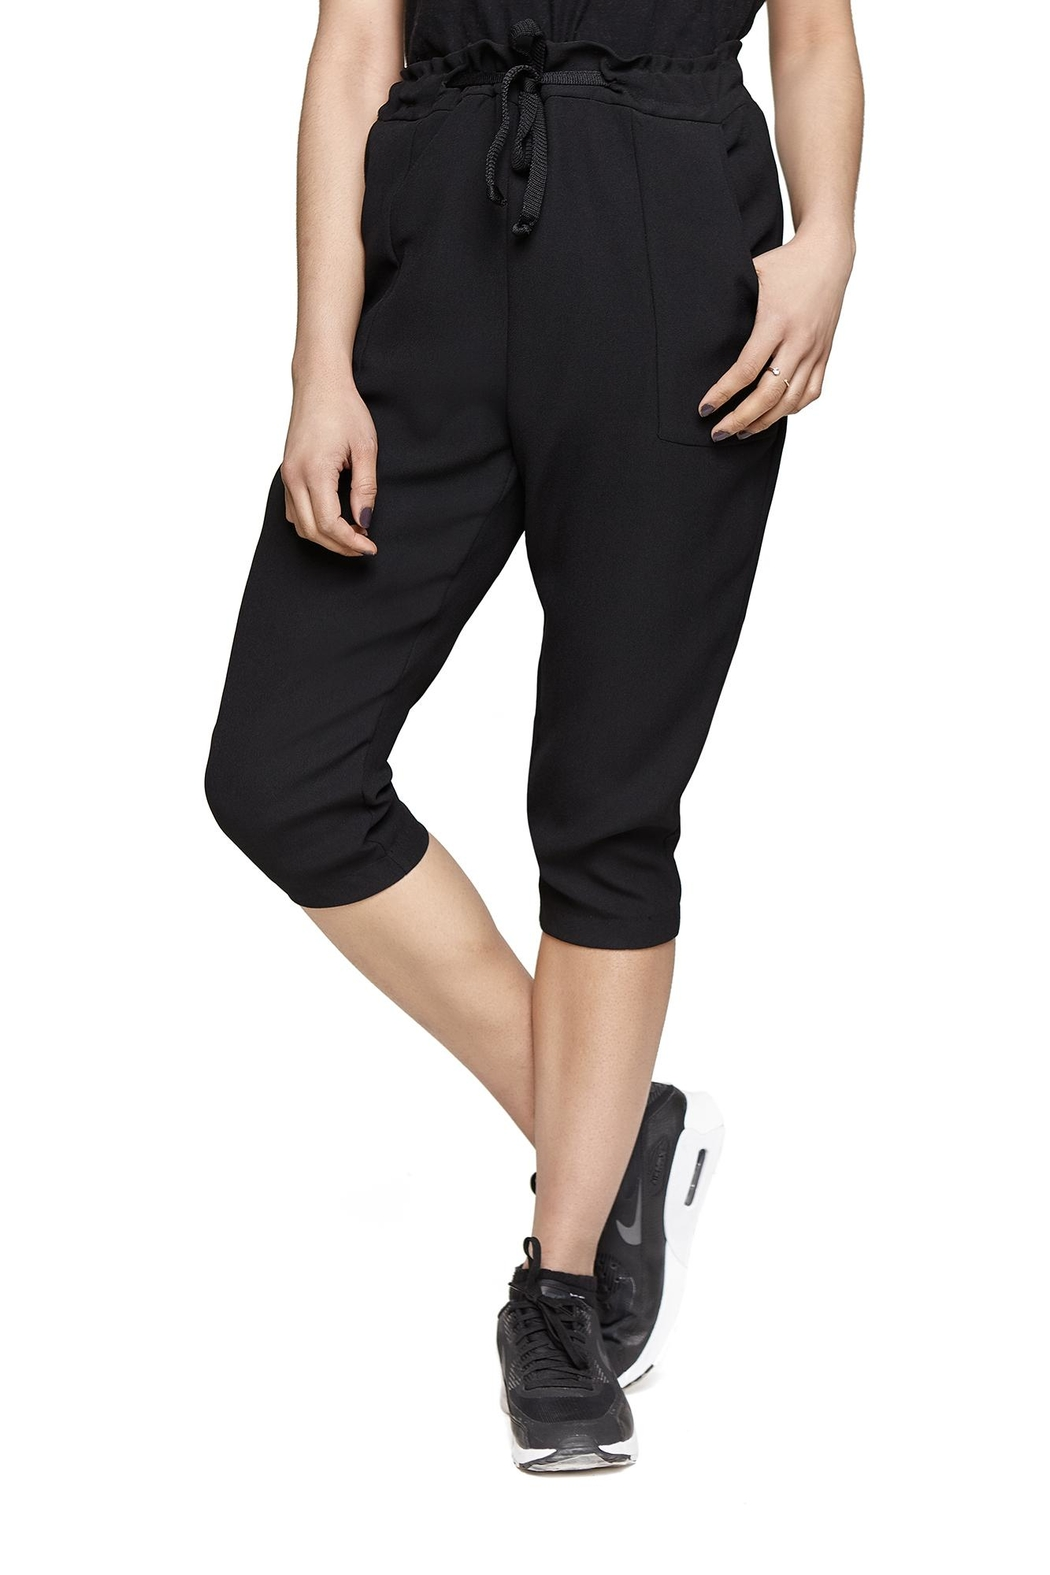 Lovan M Romana Black Pant - Front Cropped Image